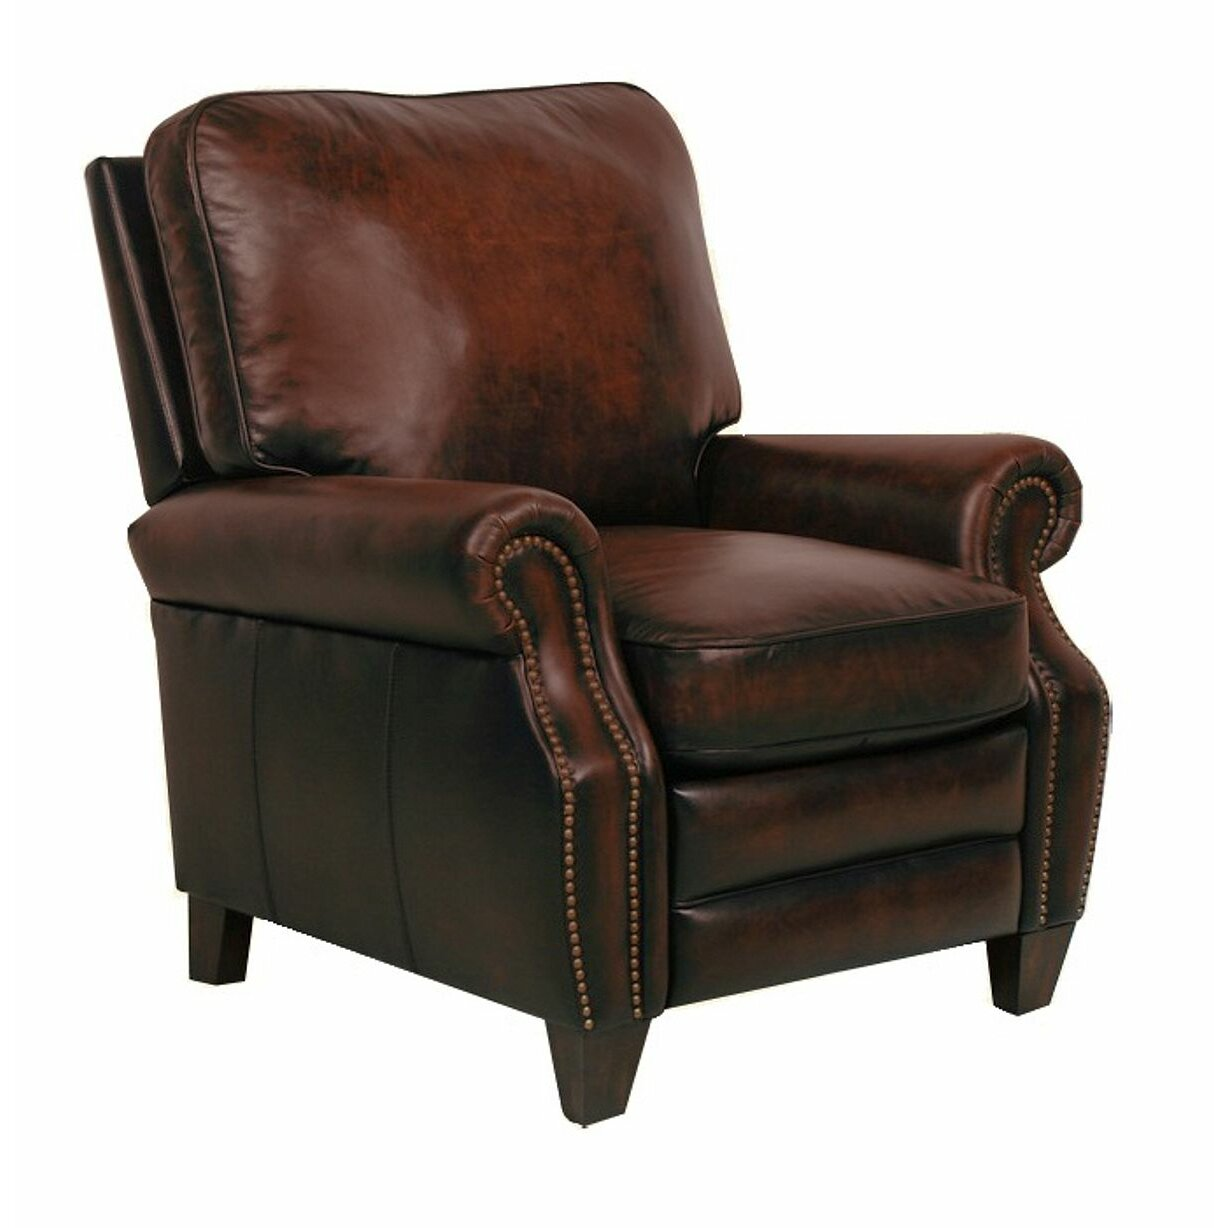 Club chair recliner - Briarwood Ii Recliner